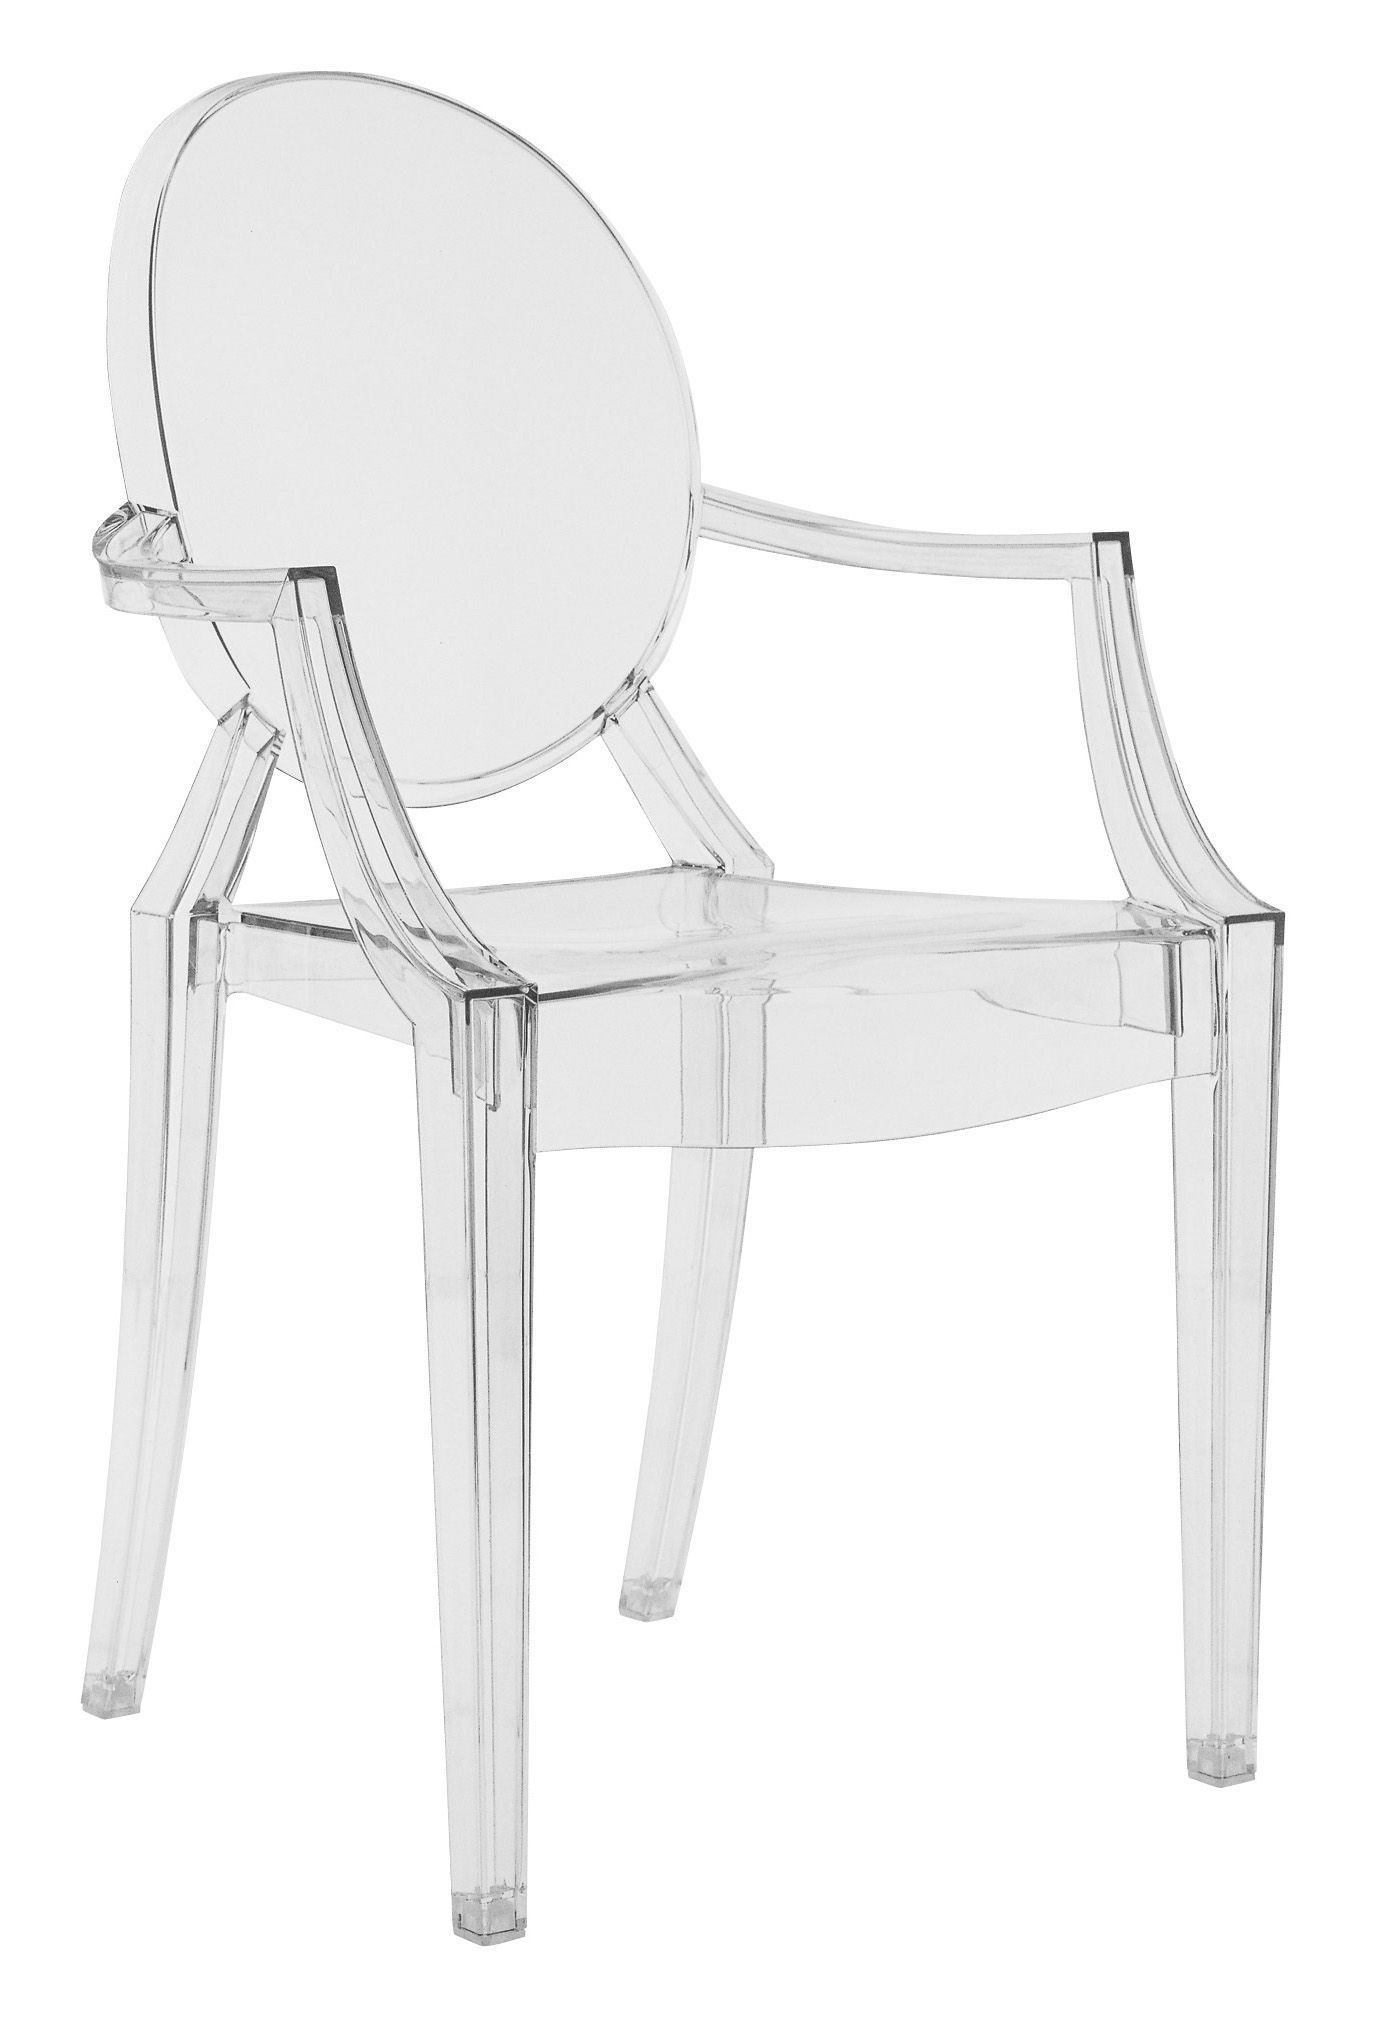 Poltrona Kartell Louis Ghost.Poltrona Louis Ghost O Famoso Designer Philippe Starck